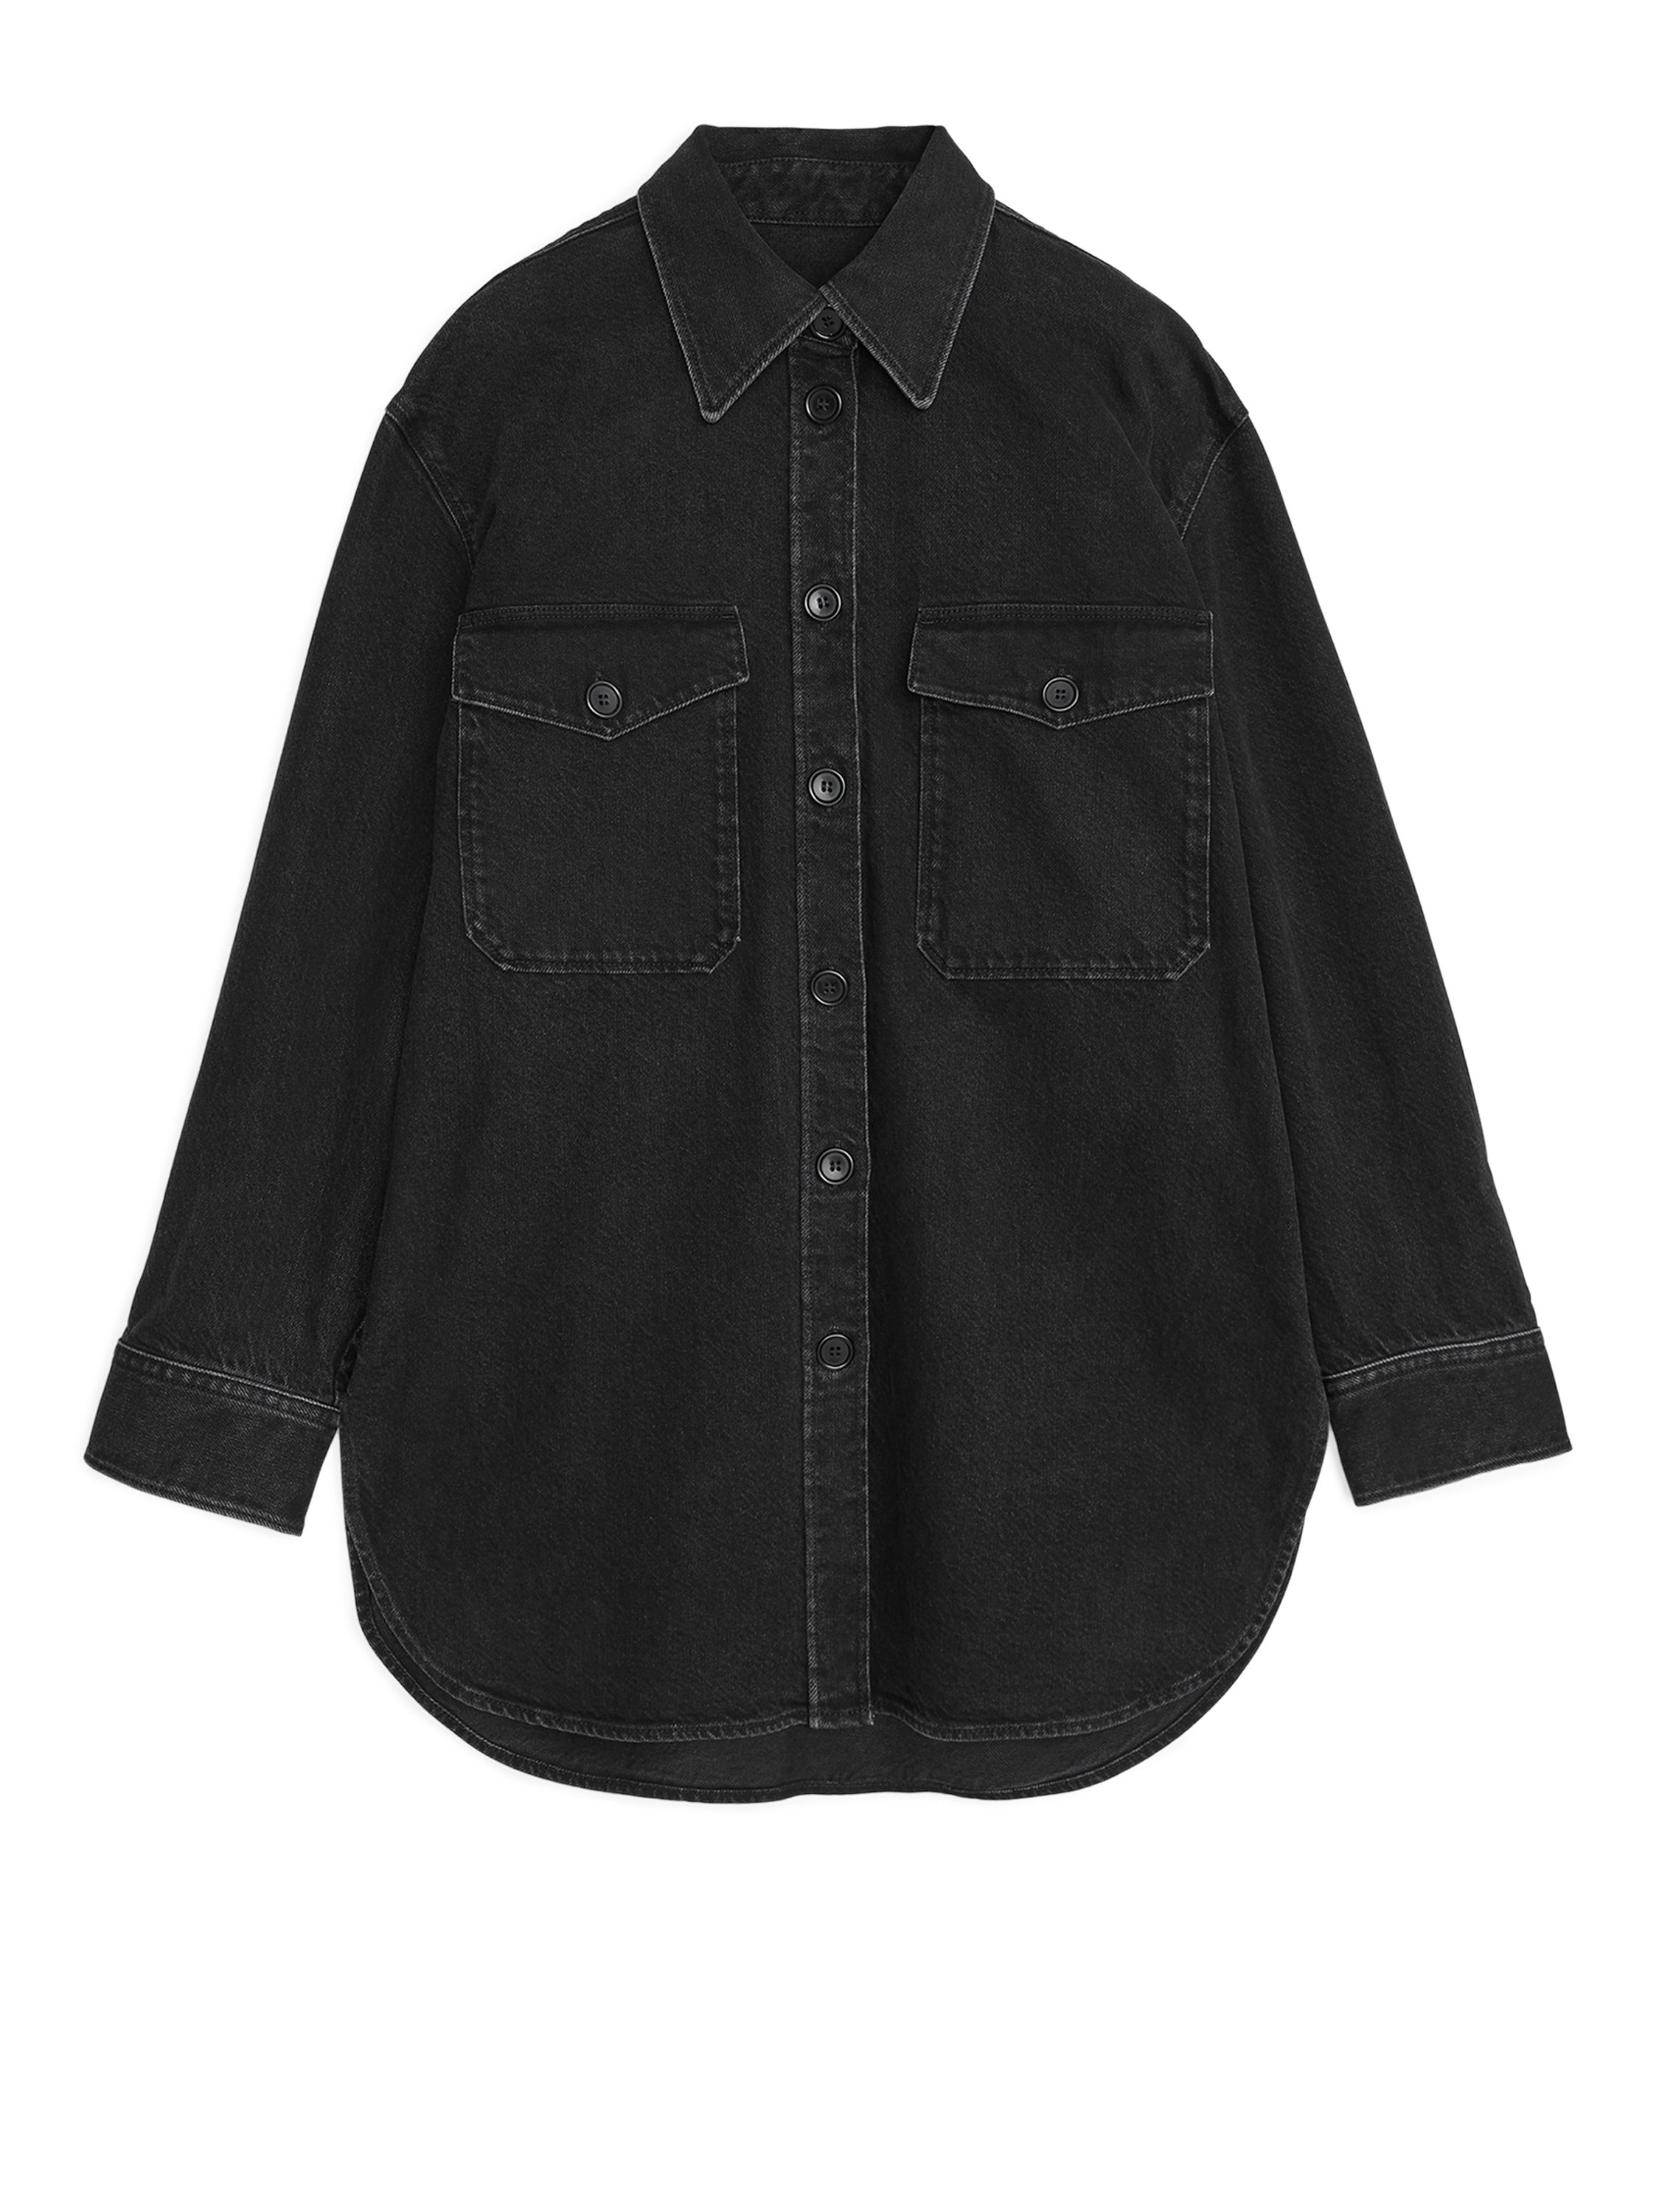 Fabric Swatch image of Arket denim overshirt jacket in black